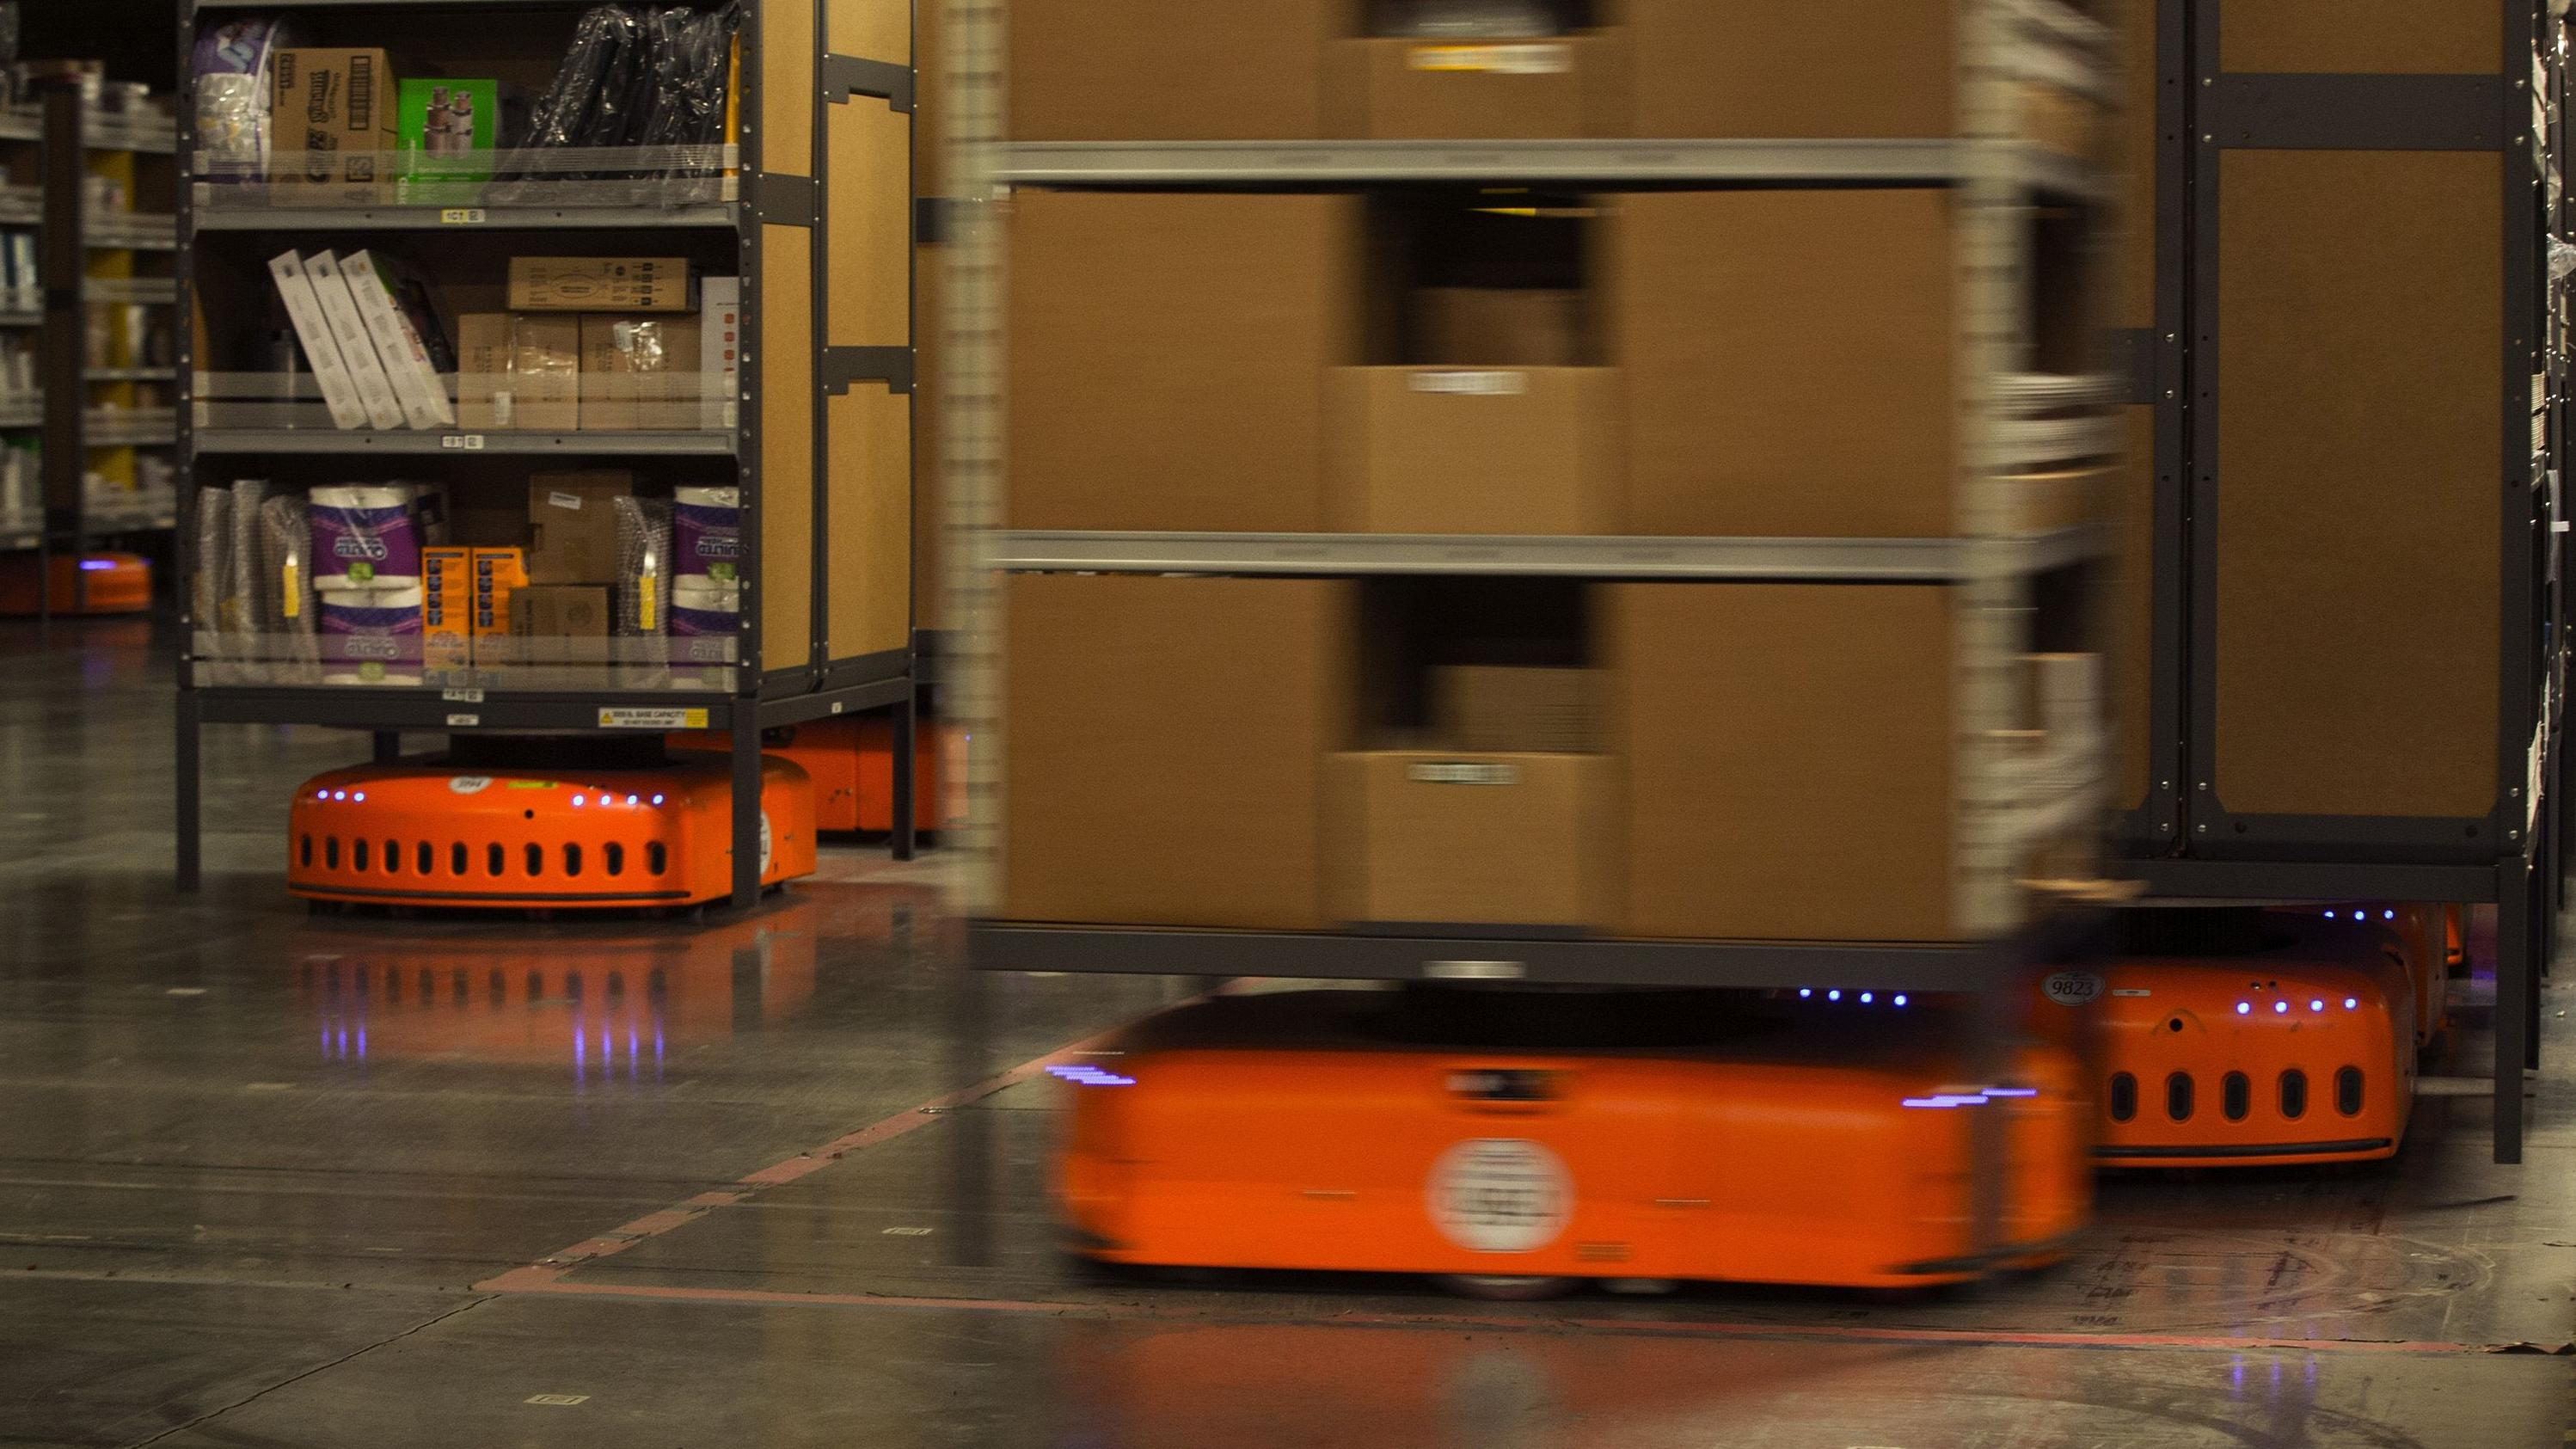 KIVAs, Amazon robots that are used to move items around the Amazon fulfillment center in DuPont, Wash., scurry by as they move merchandise. The KIVAs weigh 800 pounds each and can carry up to 3,000 pounds of merchandise. (Ellen M. Banner / TNS)